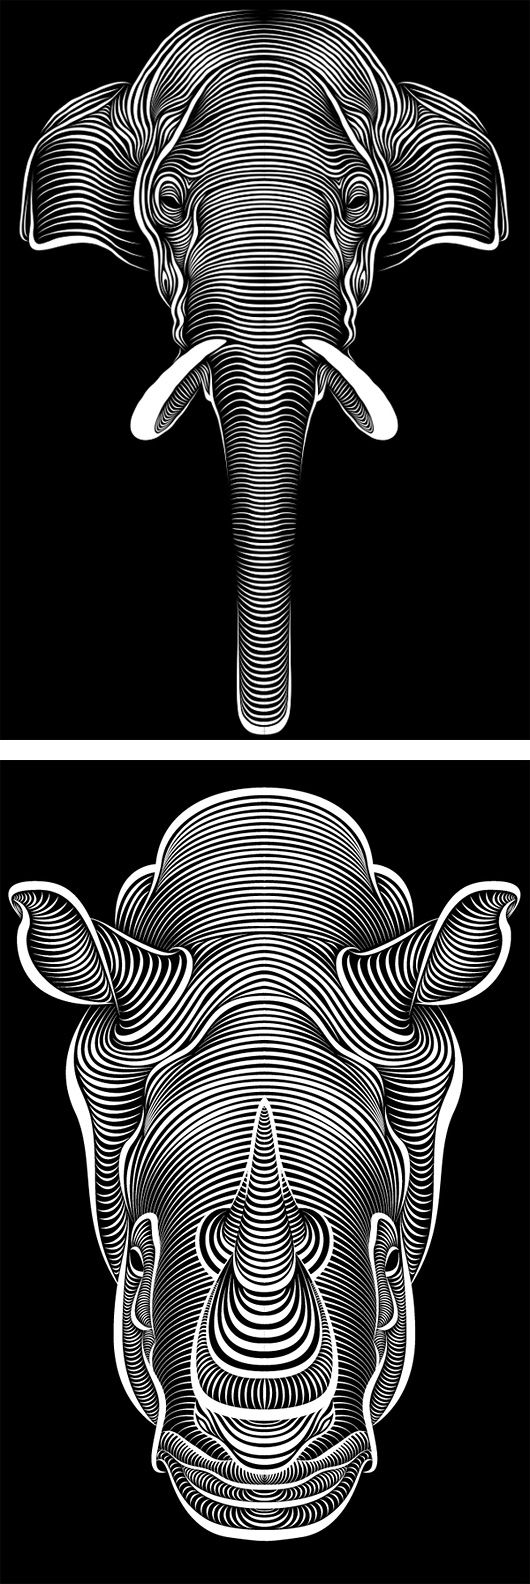 Line-Art Illustrations by Patrick Seymour | Inspiration Grid | Design Inspiration  //   Eléphant / Rhinocéros